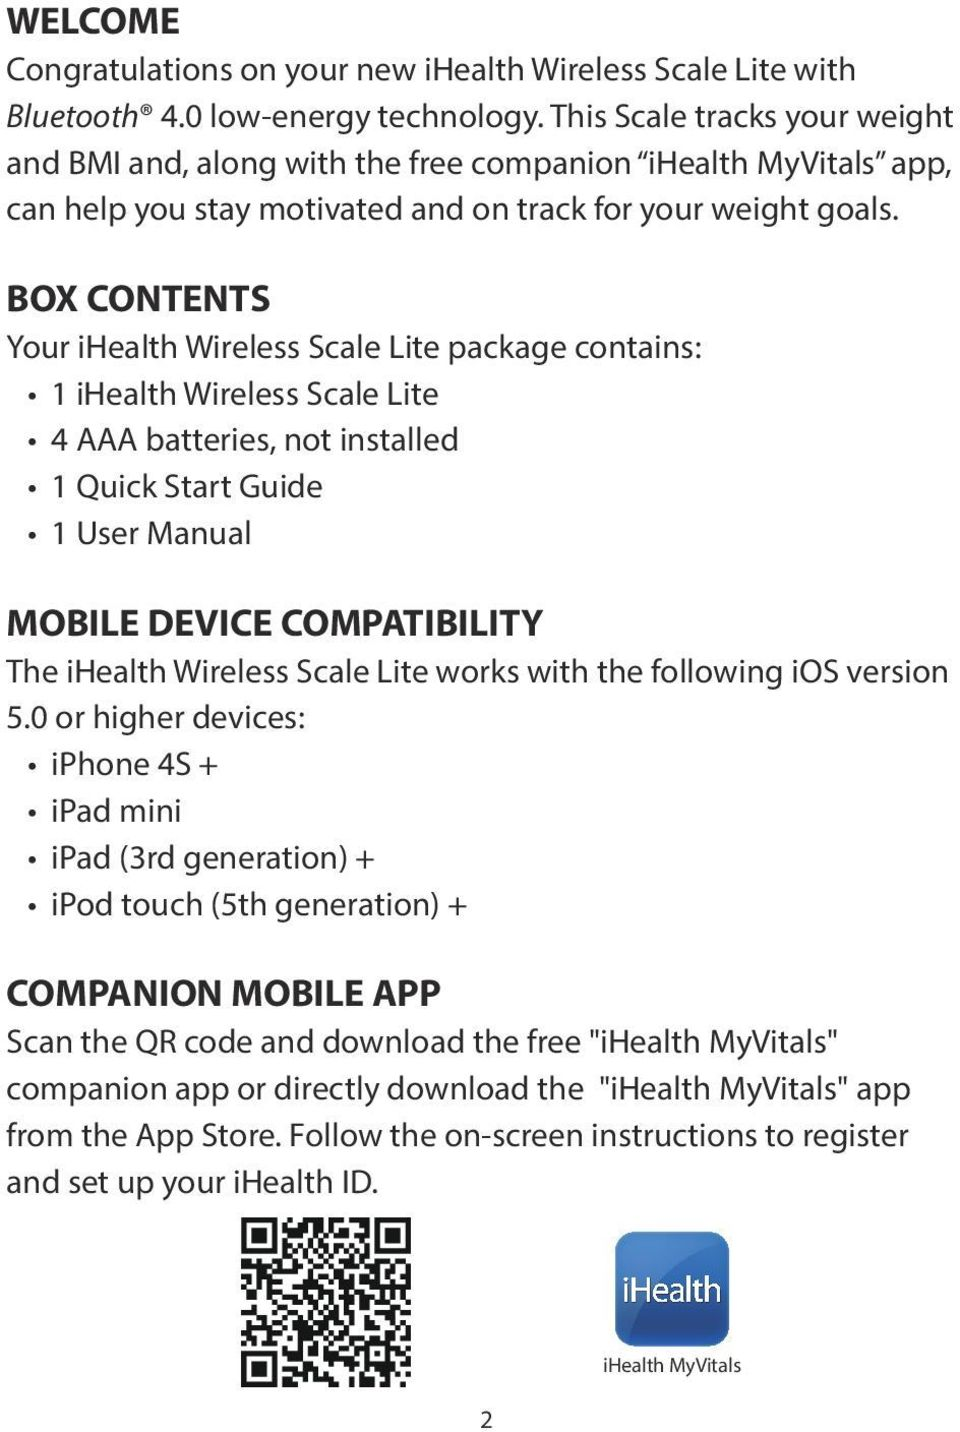 BOX CONTENTS Your ihealth Wireless Scale Lite package contains: 1 ihealth Wireless Scale Lite 4 AAA batteries, not installed 1 Quick Start Guide 1 User Manual MOBILE DEVICE COMPATIBILITY The ihealth